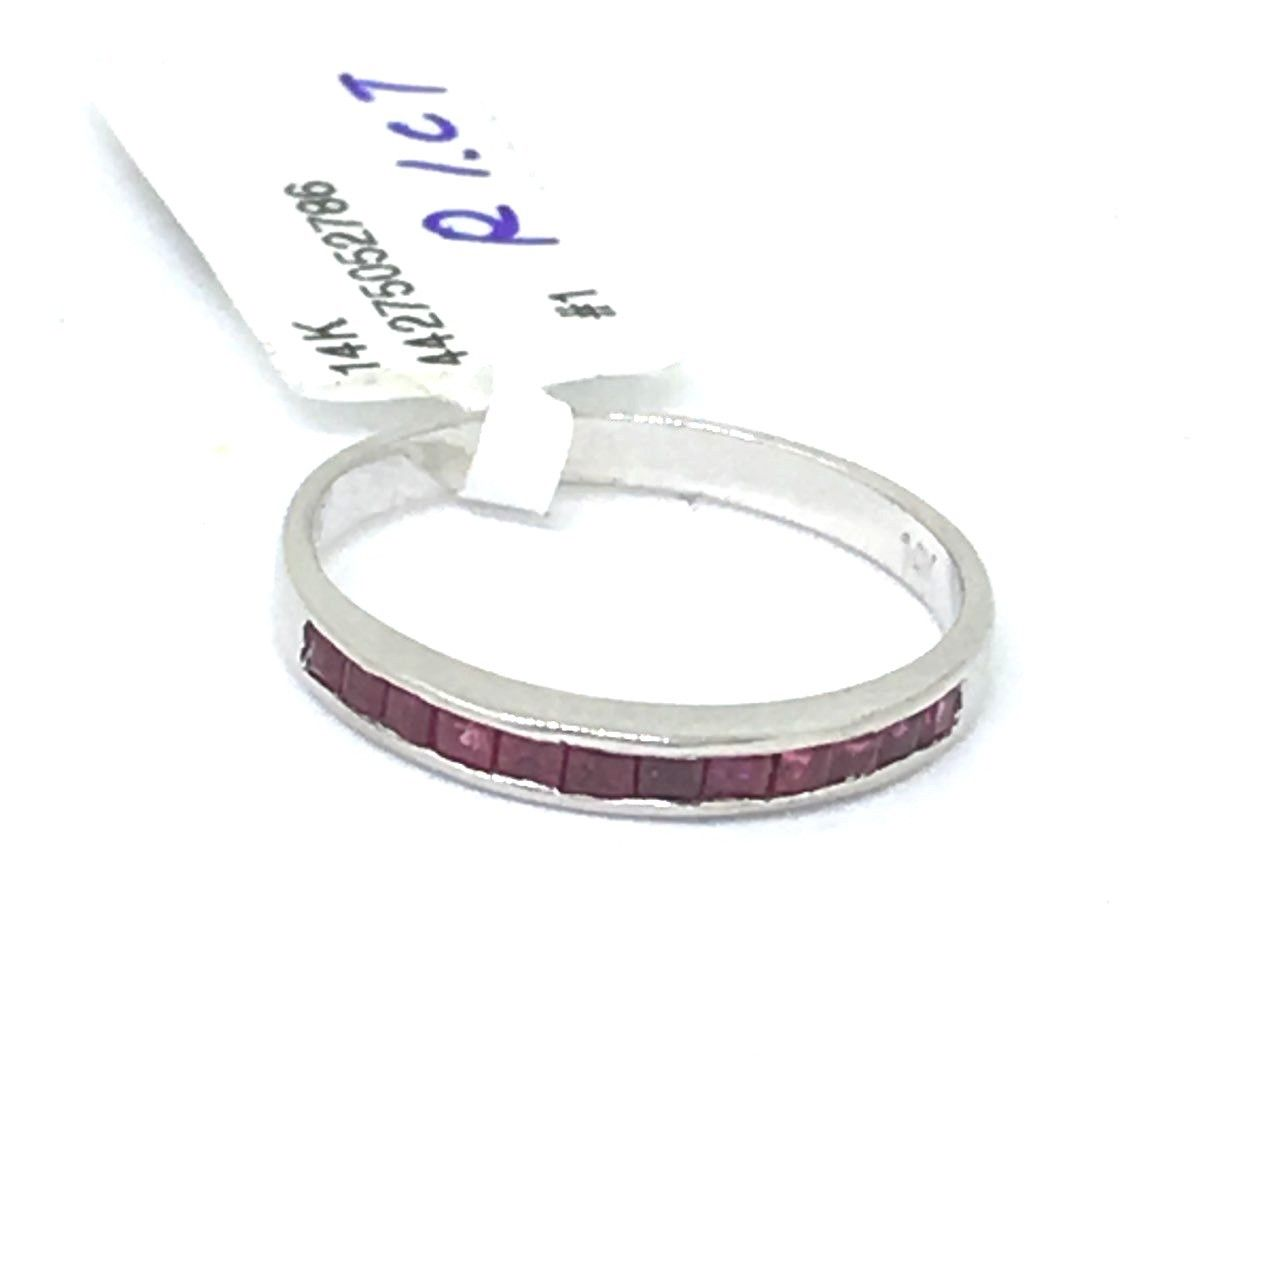 14K white gold and Genuine Ruby Ring $400 NWT Size 6 1/2